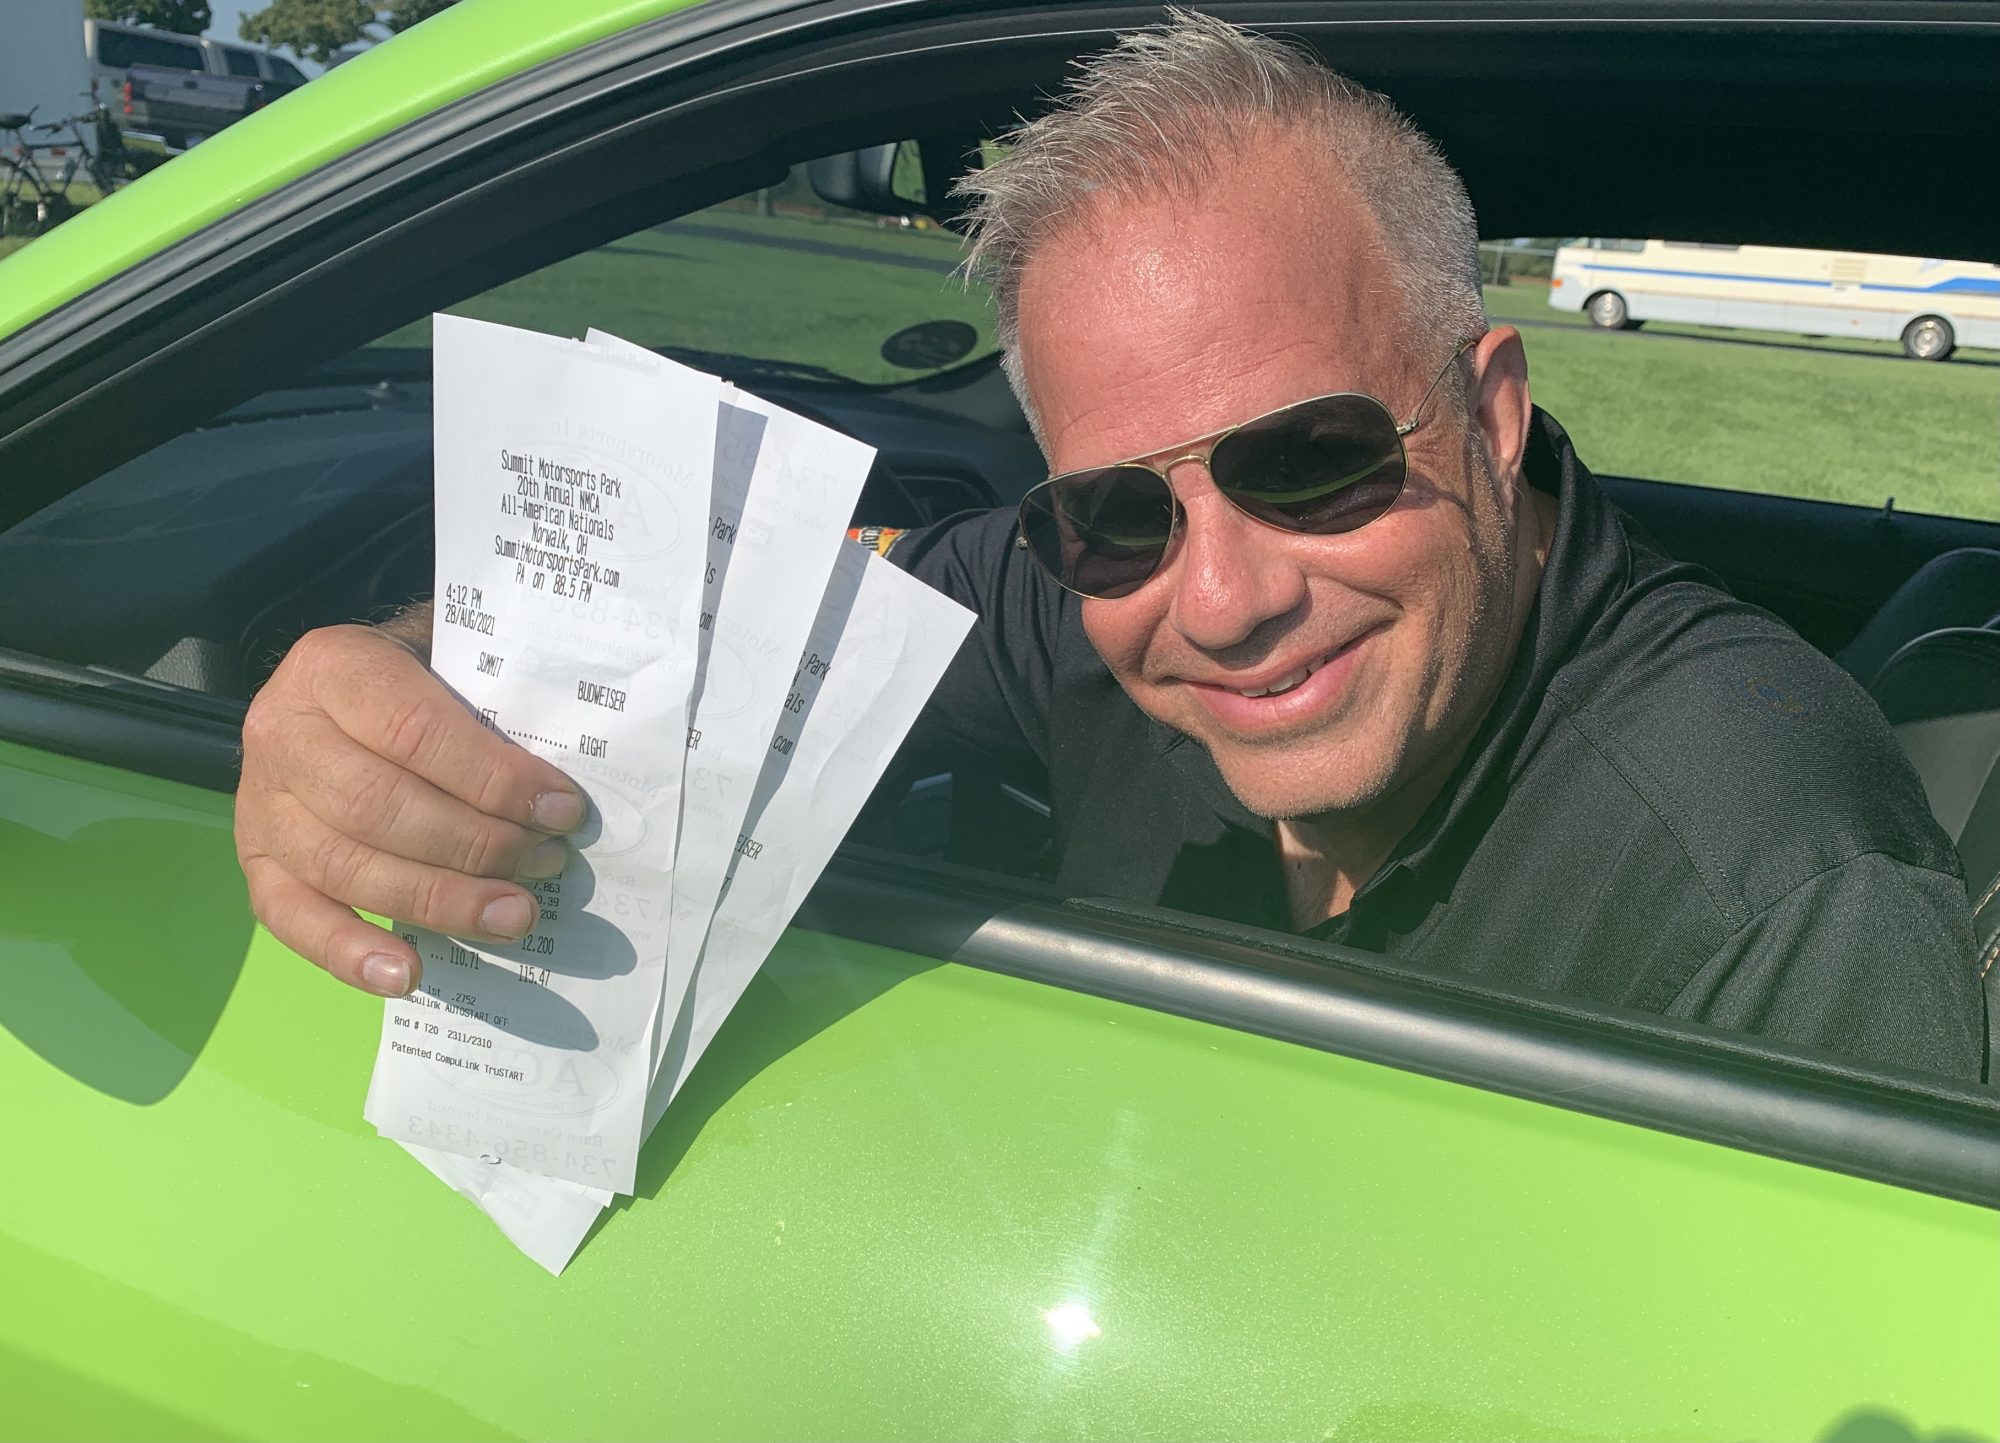 Man showing off his time slips